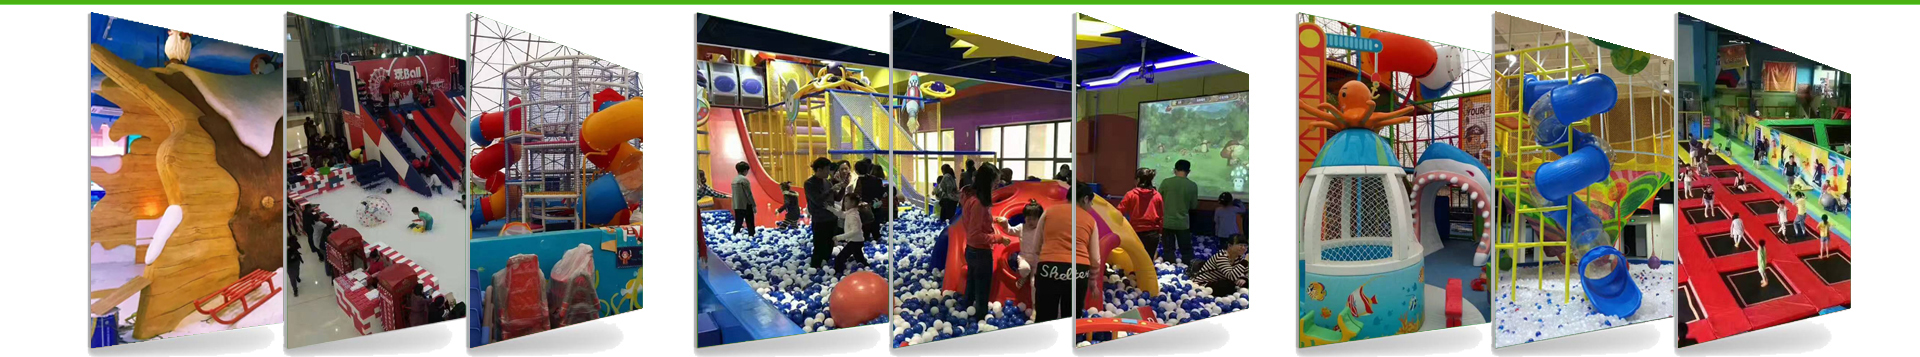 Components of indoor playground